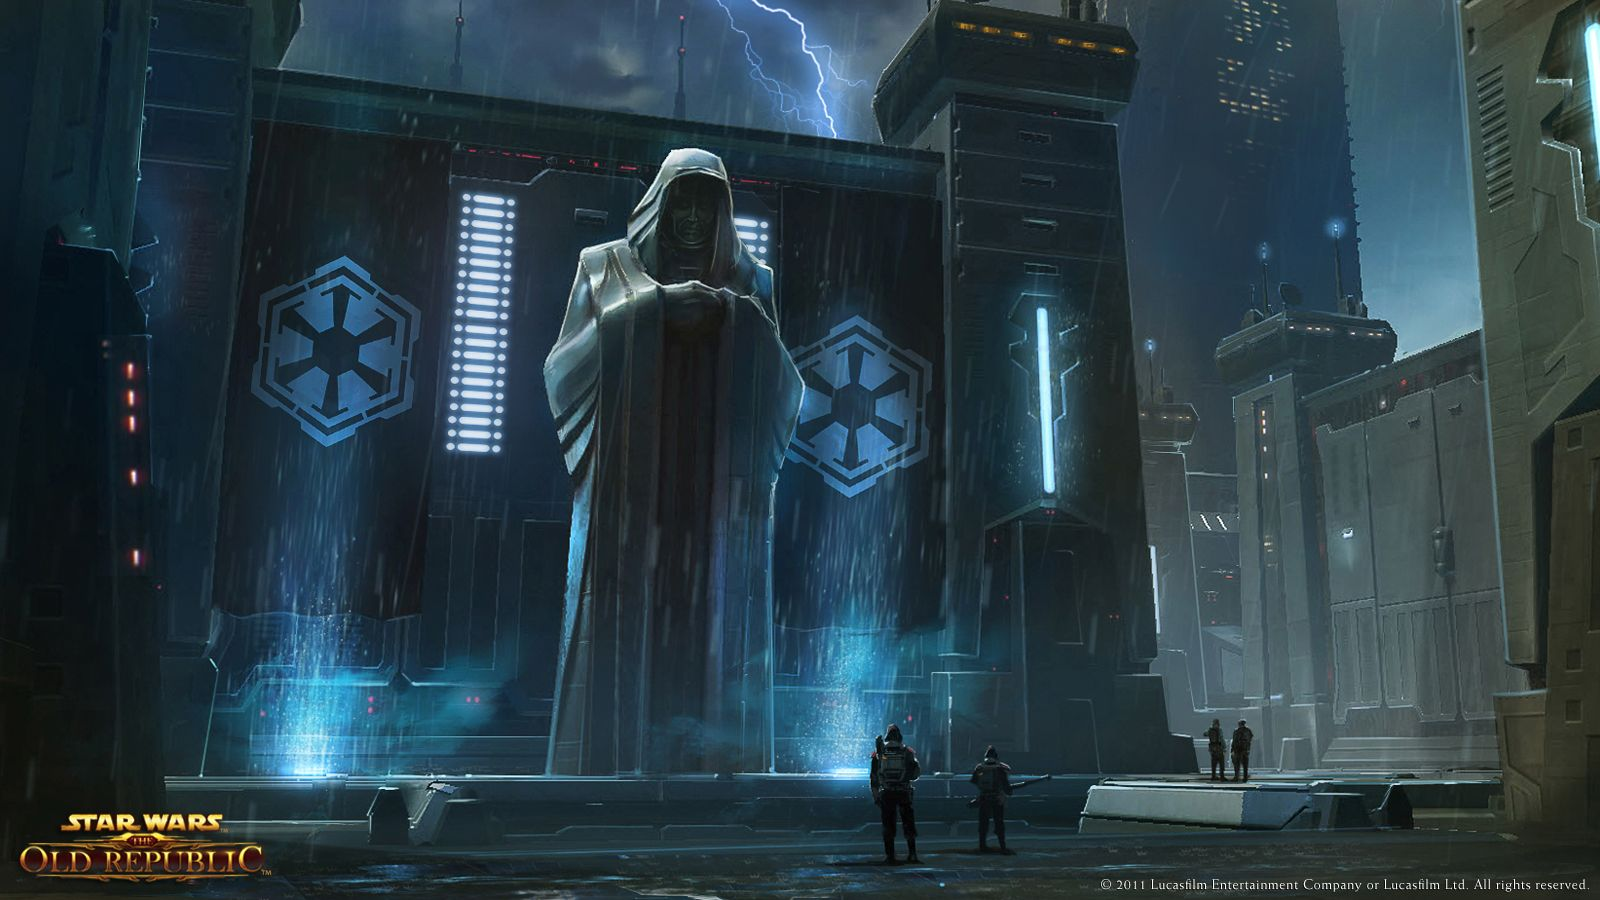 Star Wars The Old Republic Concept Art Star Wars The Old Star Wars Wallpaper Ultimate Star Wars